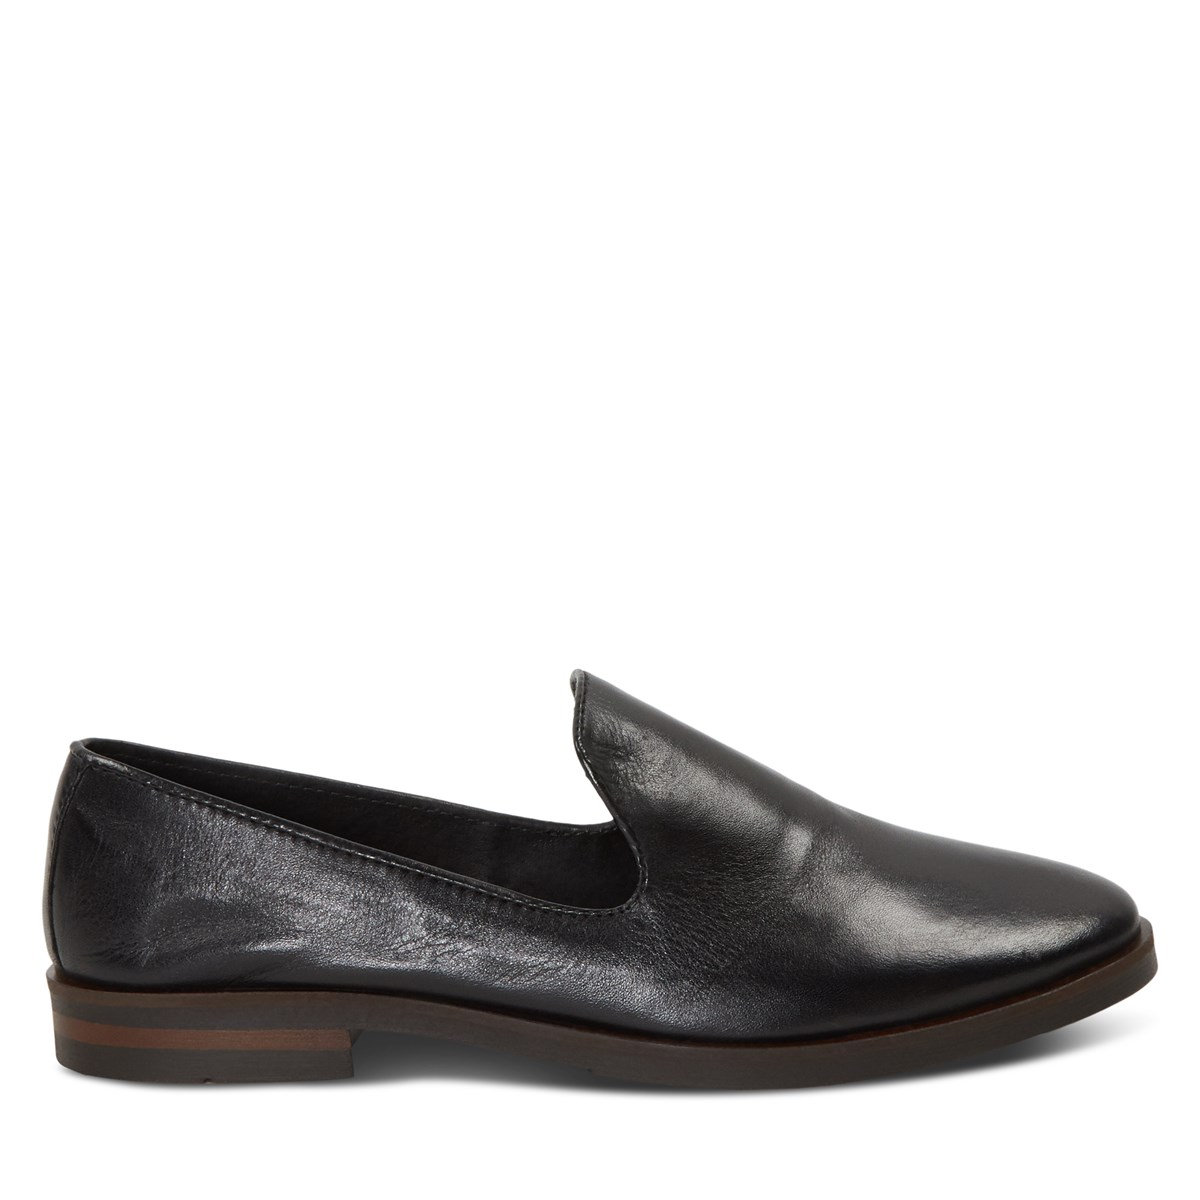 Women's Ava Loafers in Black